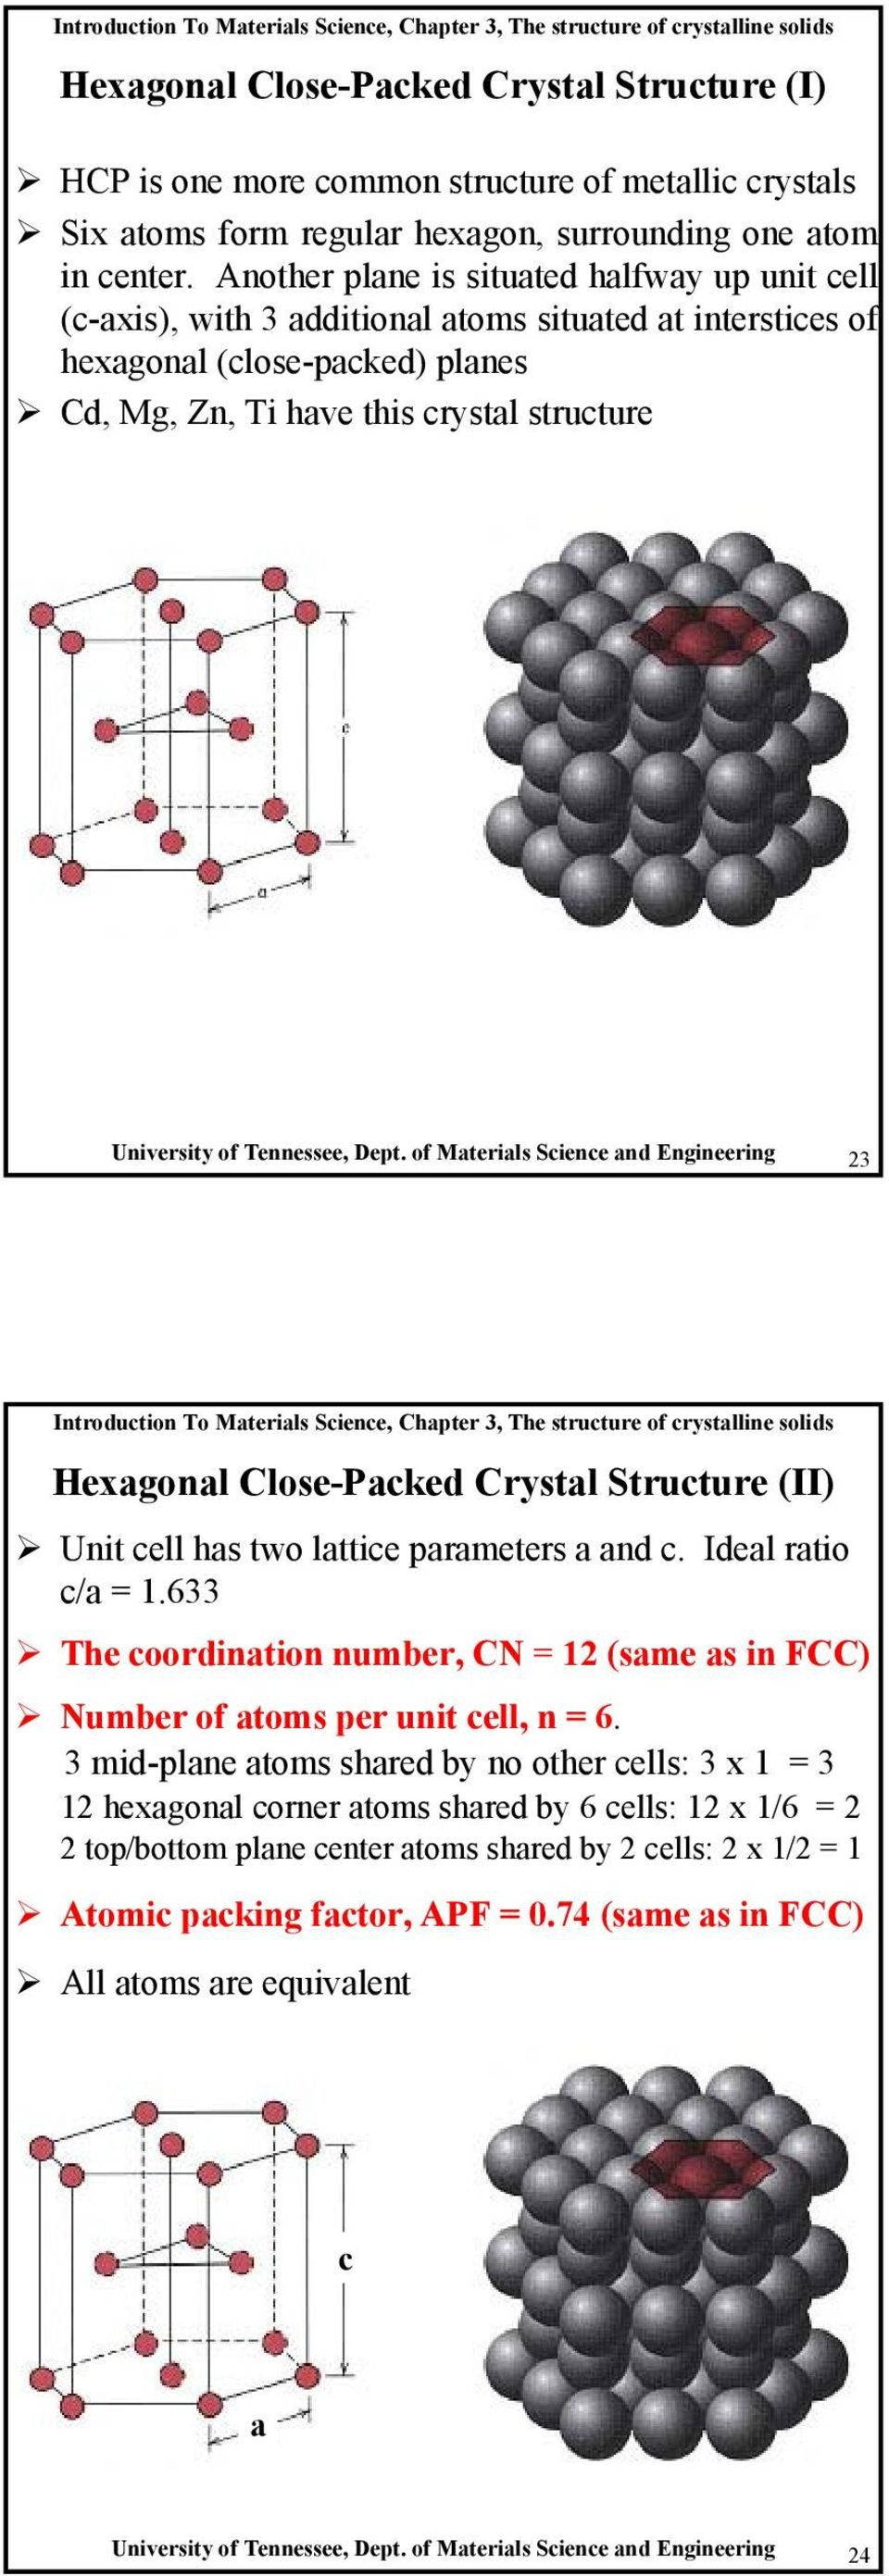 Tennessee, Dept. of Materials Science and Engineering 23 Hexagonal Close-Packed Crystal Structure (II) Unit cell has two lattice parameters a and c. Ideal ratio c/a = 1.